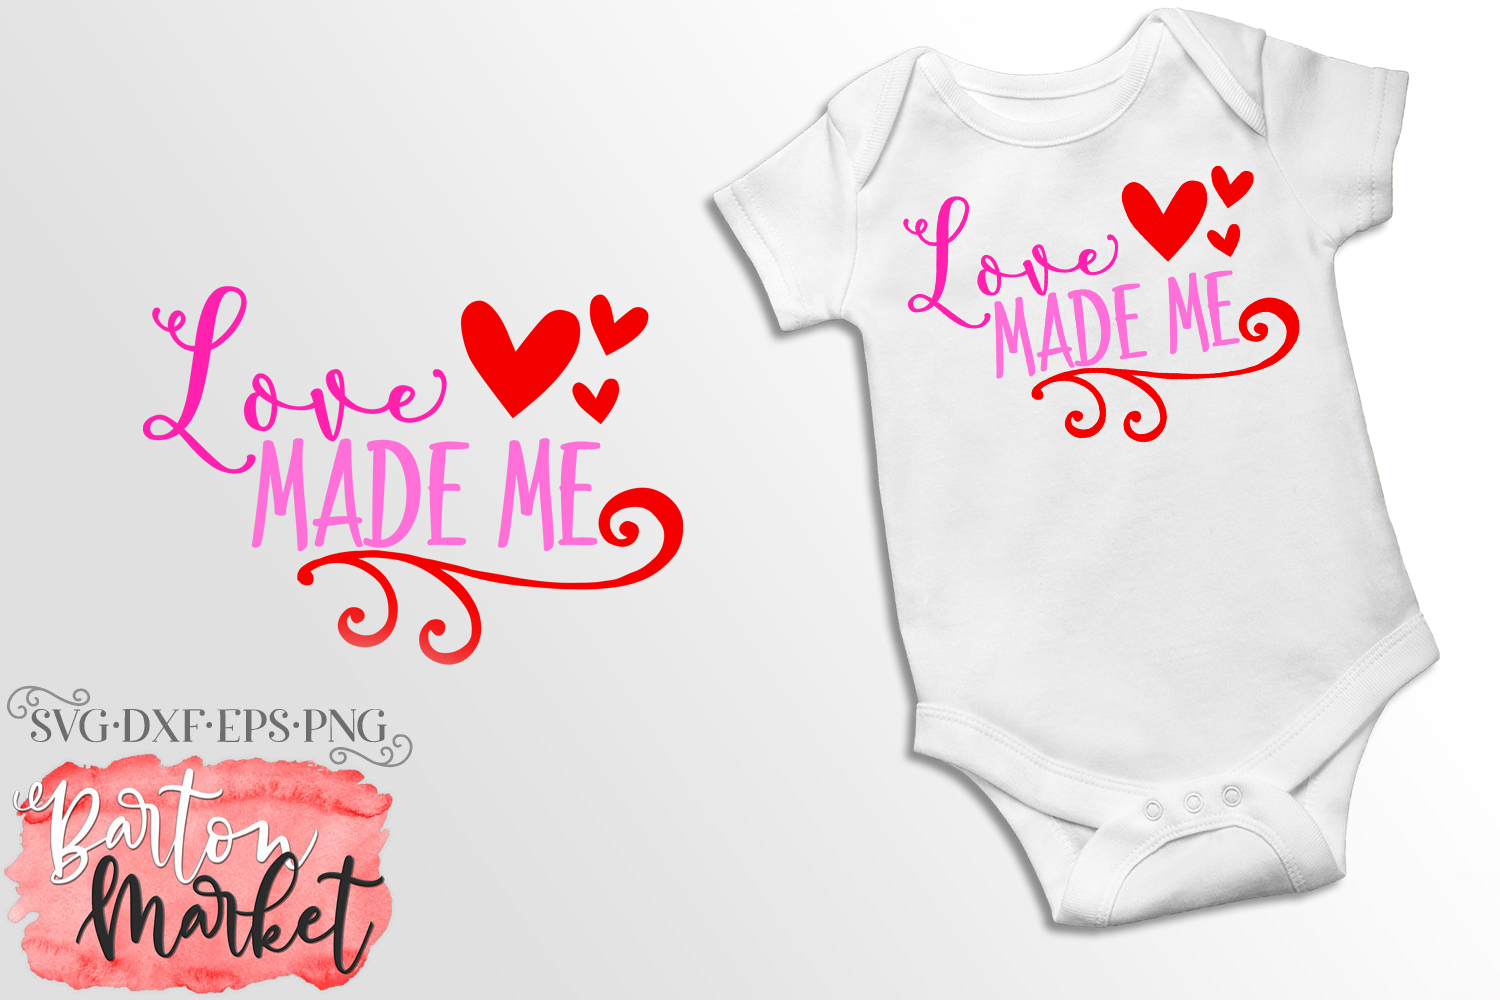 Download Free Love Made Me Svg Graphic By Barton Market Creative Fabrica for Cricut Explore, Silhouette and other cutting machines.